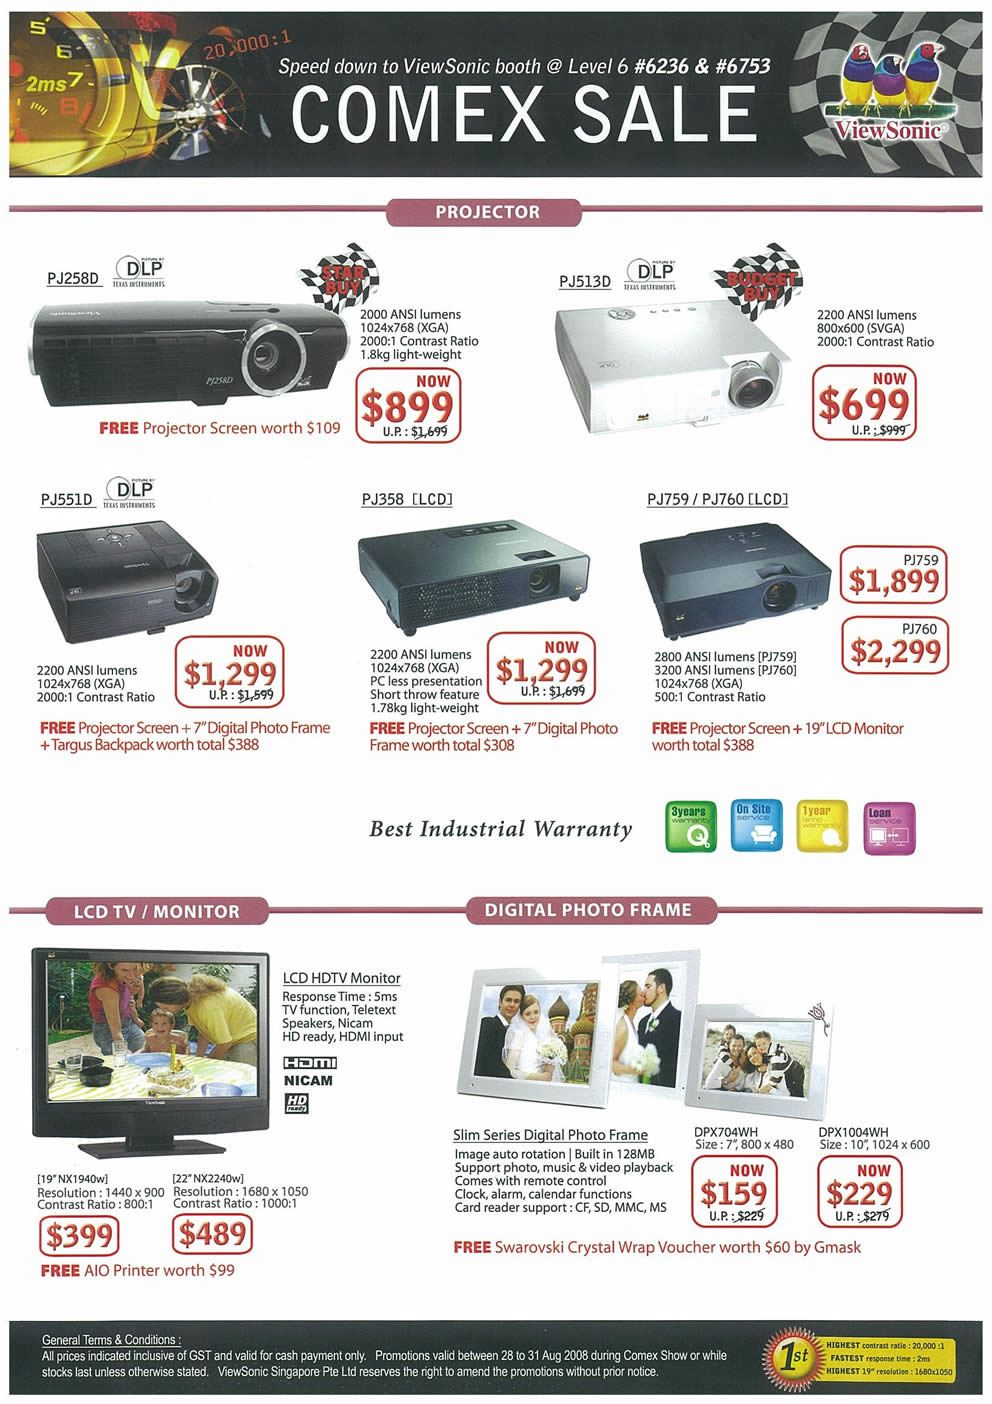 Comex 2008 price list image brochure of Viewsonic Page 2